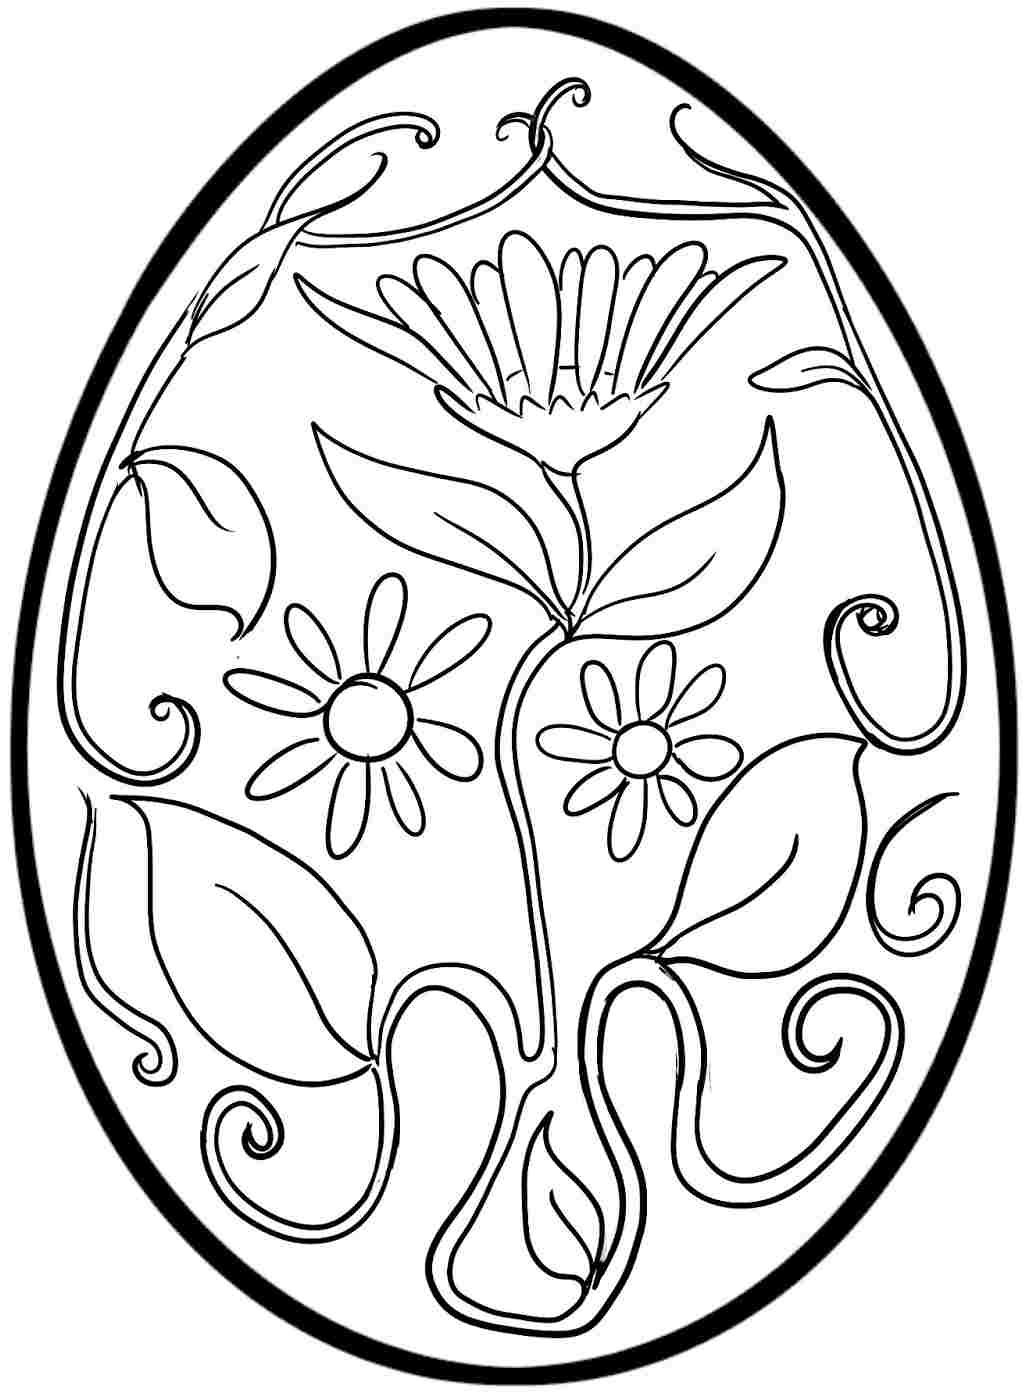 Easter Eggs Coloring Pages Coloringsuite to Print Of Easter Egg Designs Coloring Pages to Print